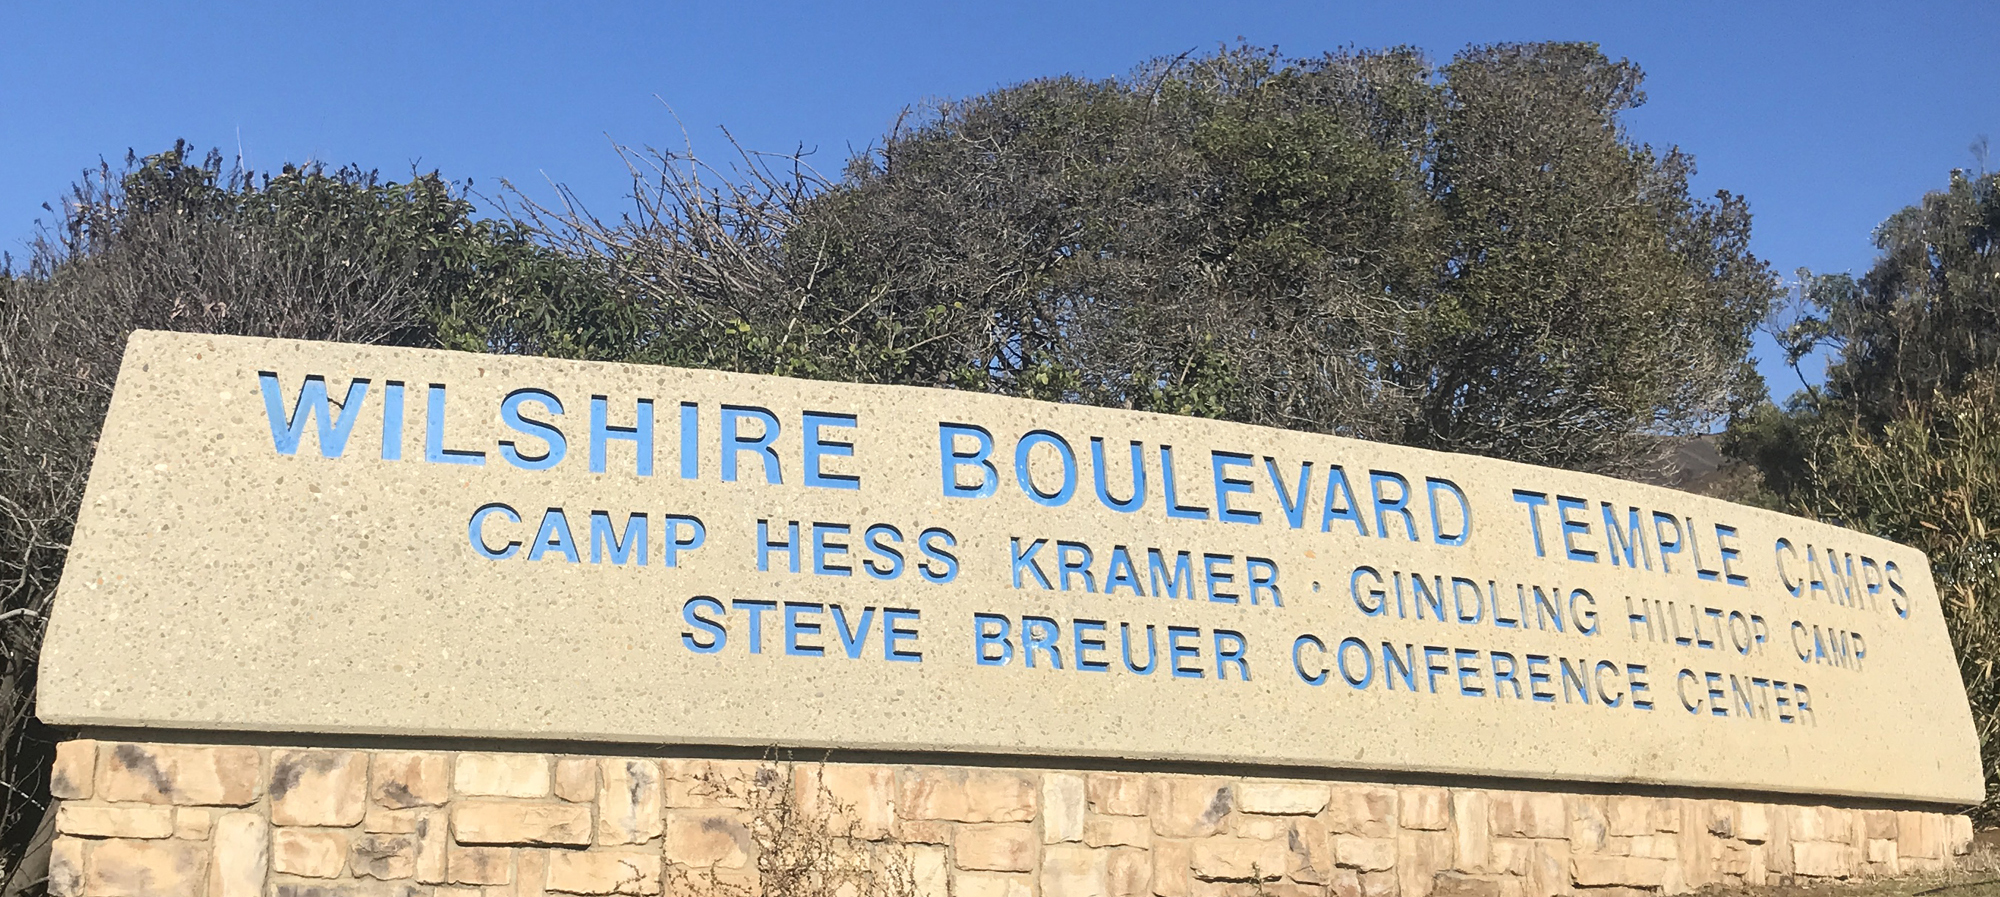 Our group met in Malibu at the Hess Kramer camp entrance next to     Neptune's Net, 42505 Pacific Coast Highway,     for hugging, smudging, reconnection and respectful remembrance of MCLA's 20-plus years of powerful men's work conducted on this majestic mountain.